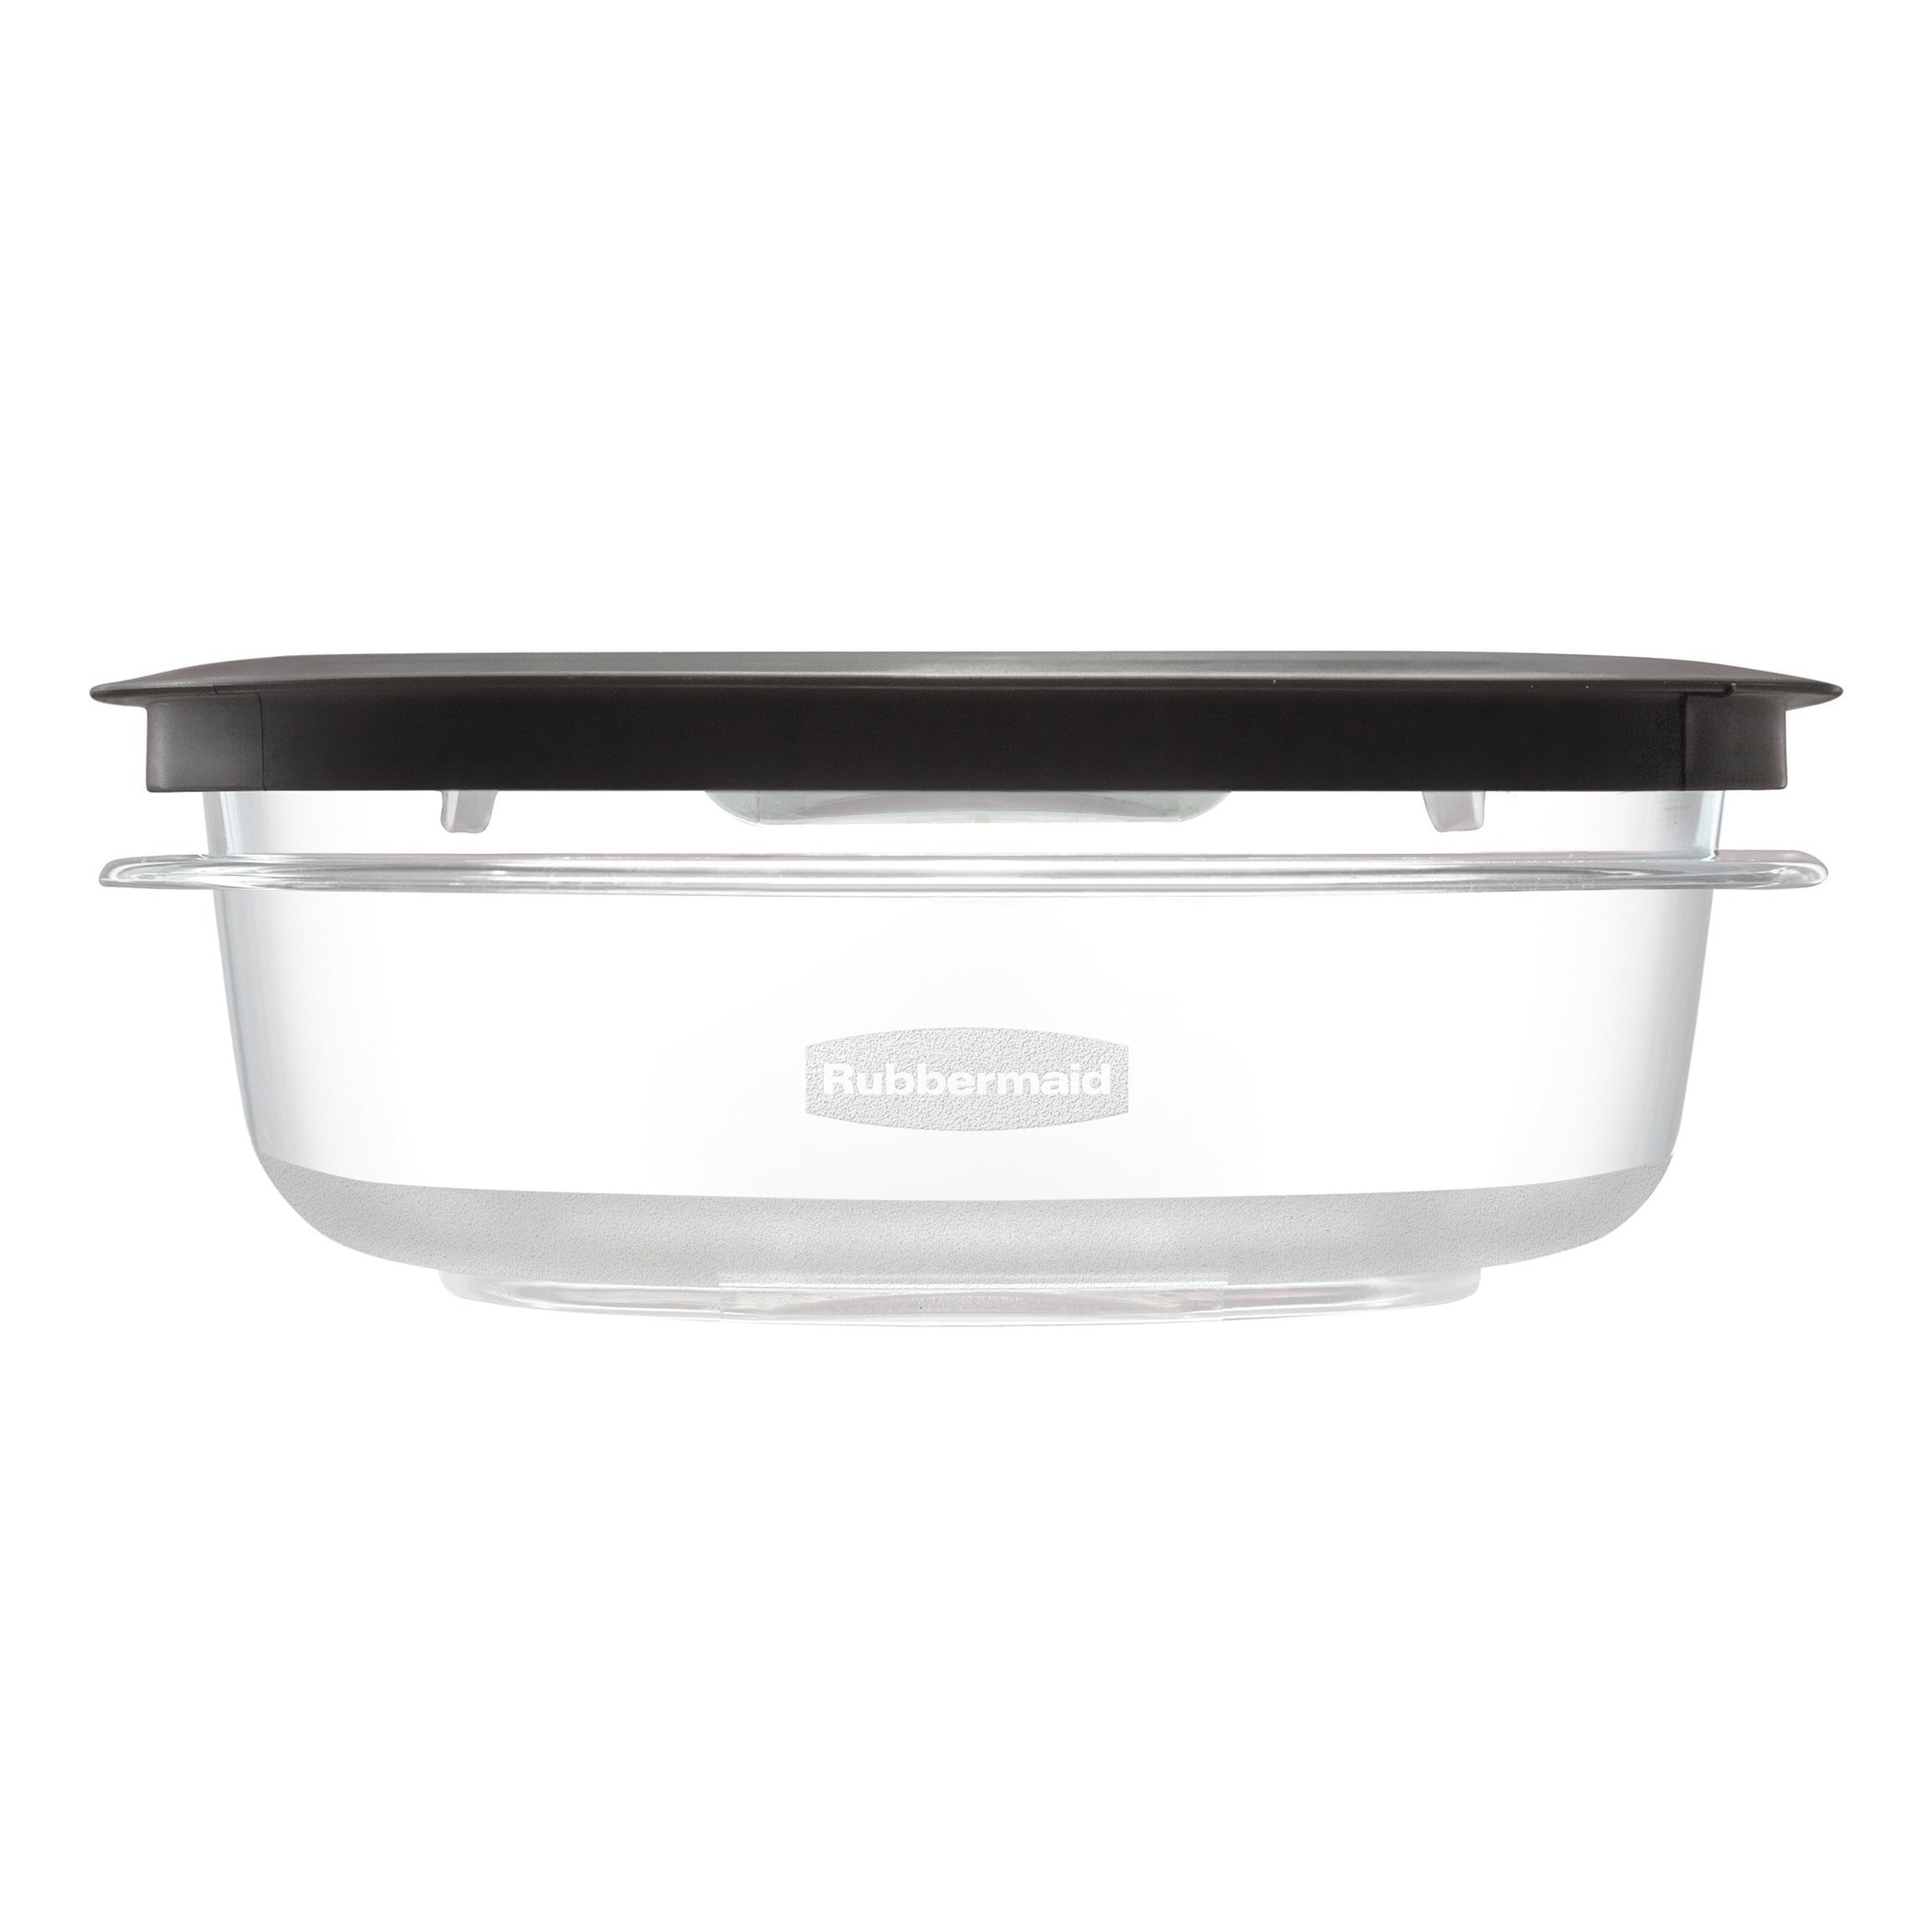 Rubbermaid 1937648 3 Cup Premier Food Storage Container (...